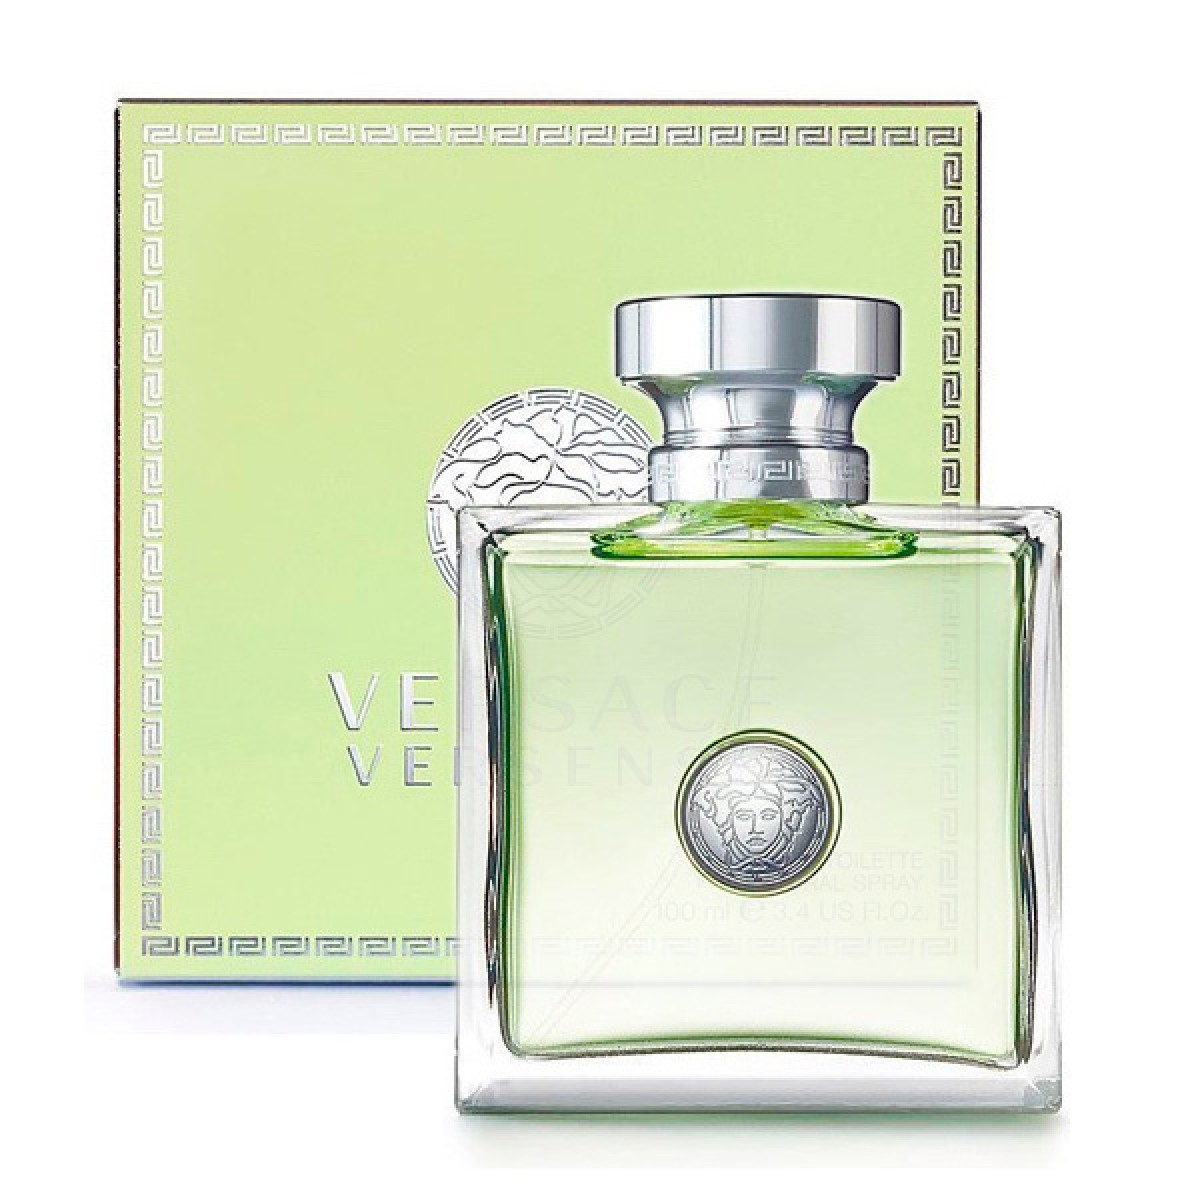 Dameparfume Versense Versace EDT - Kapacitet: 50 ml